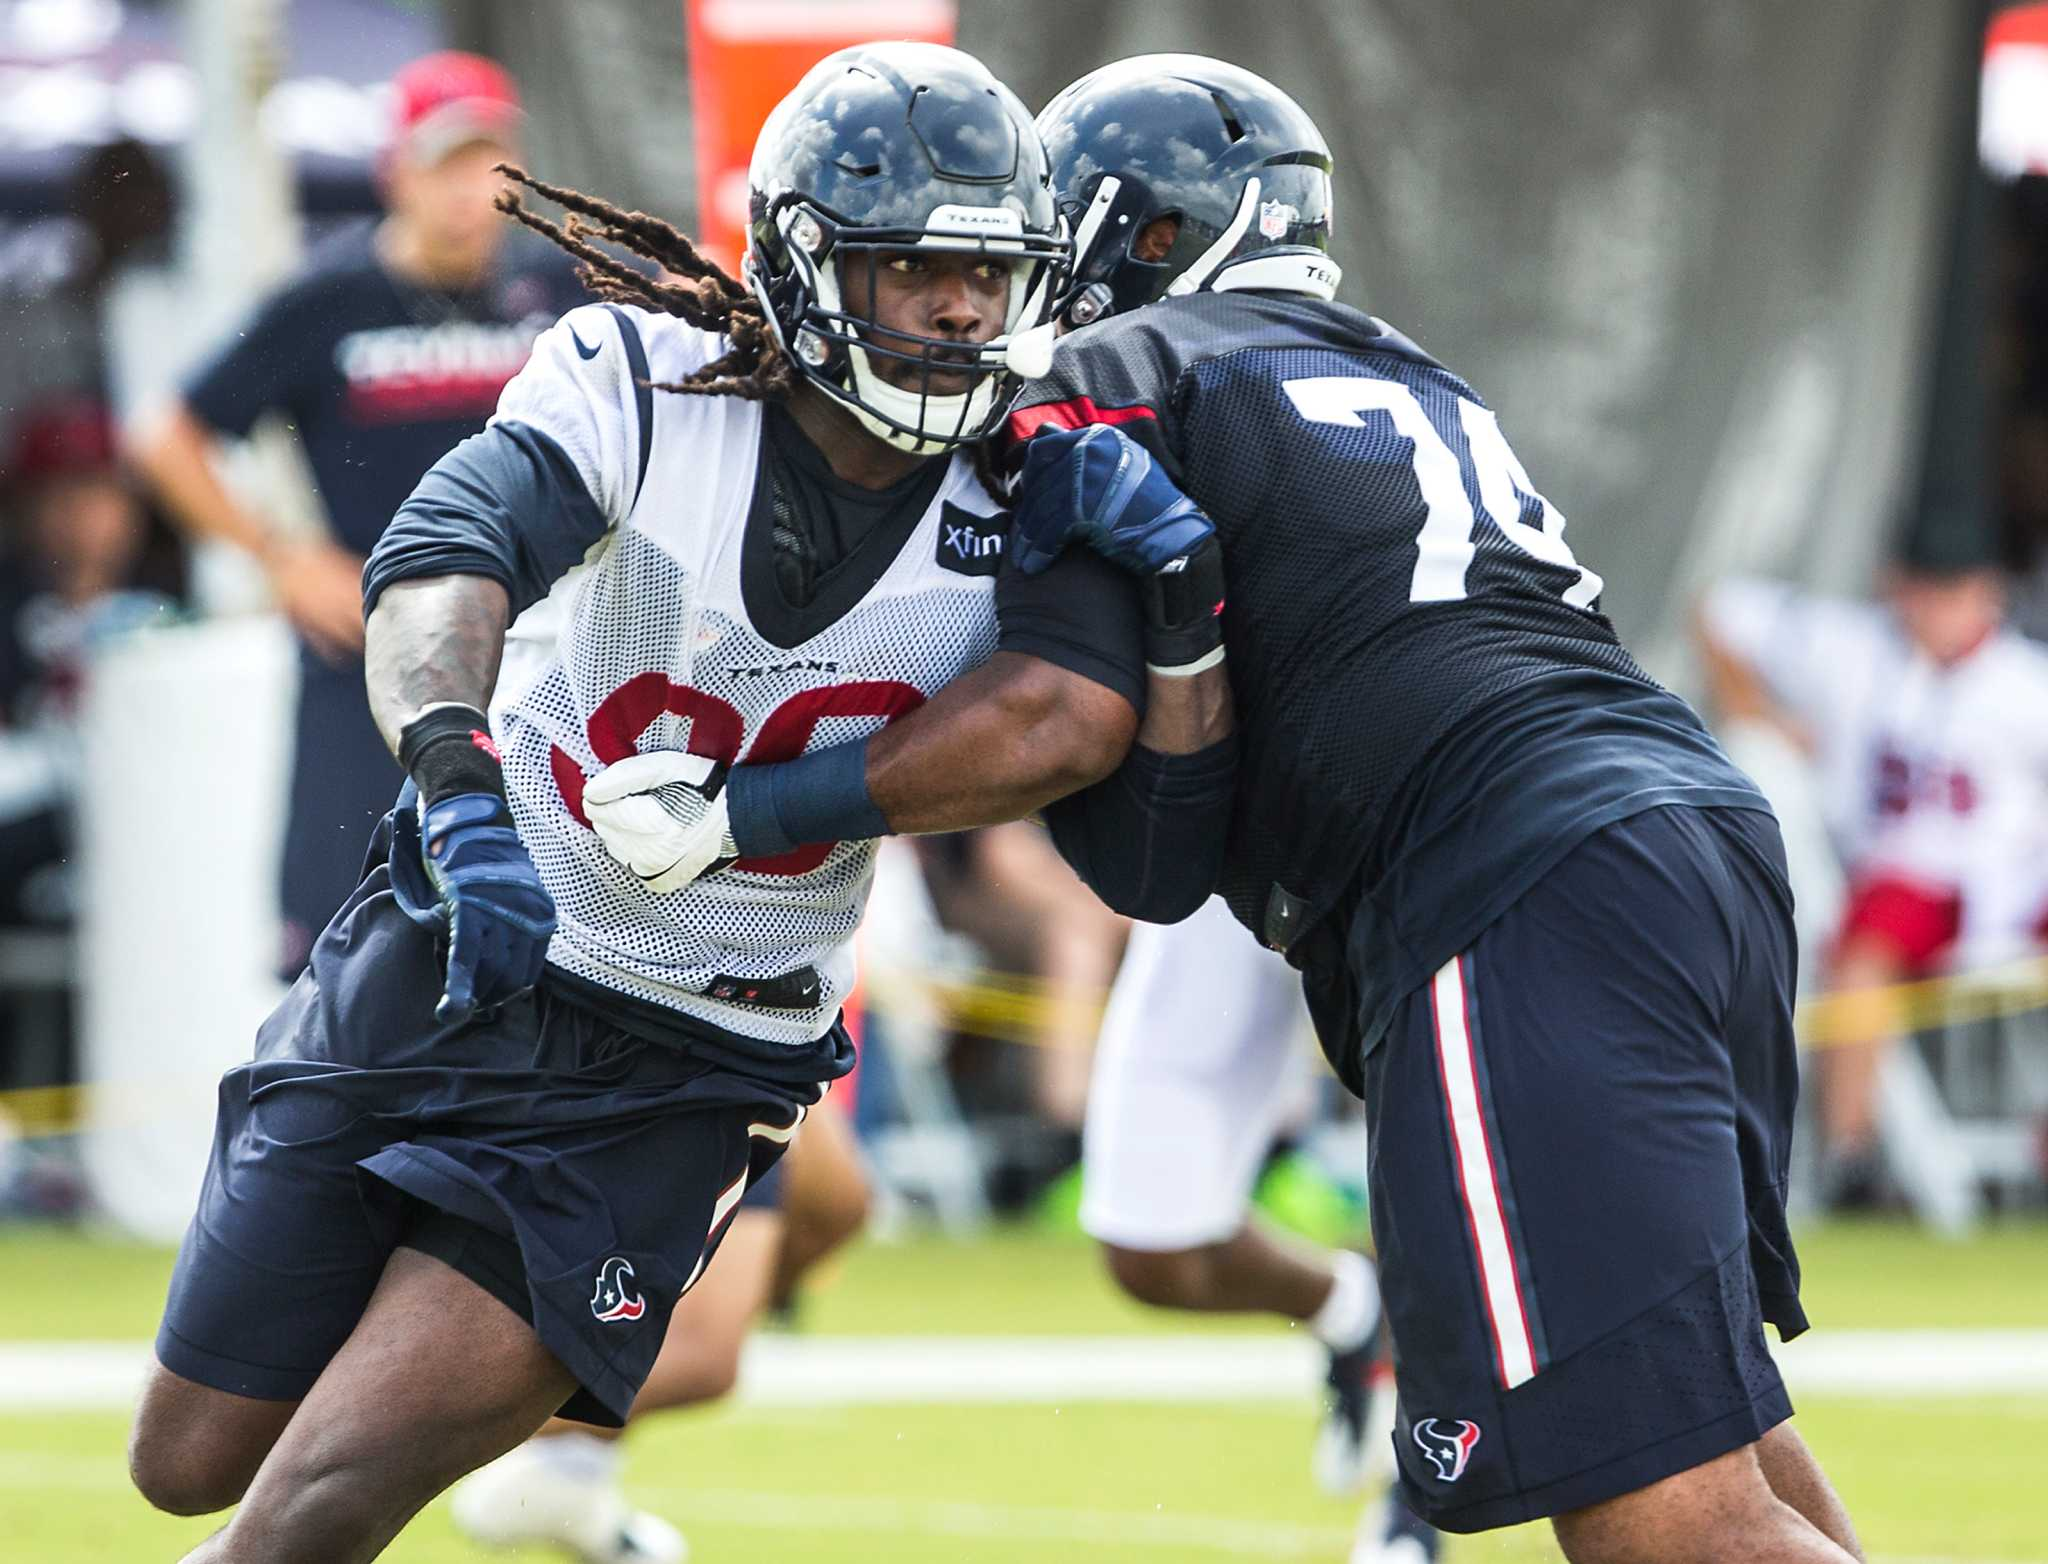 Texans Jadeveon Clowney Hopes Less Weight Means More Production